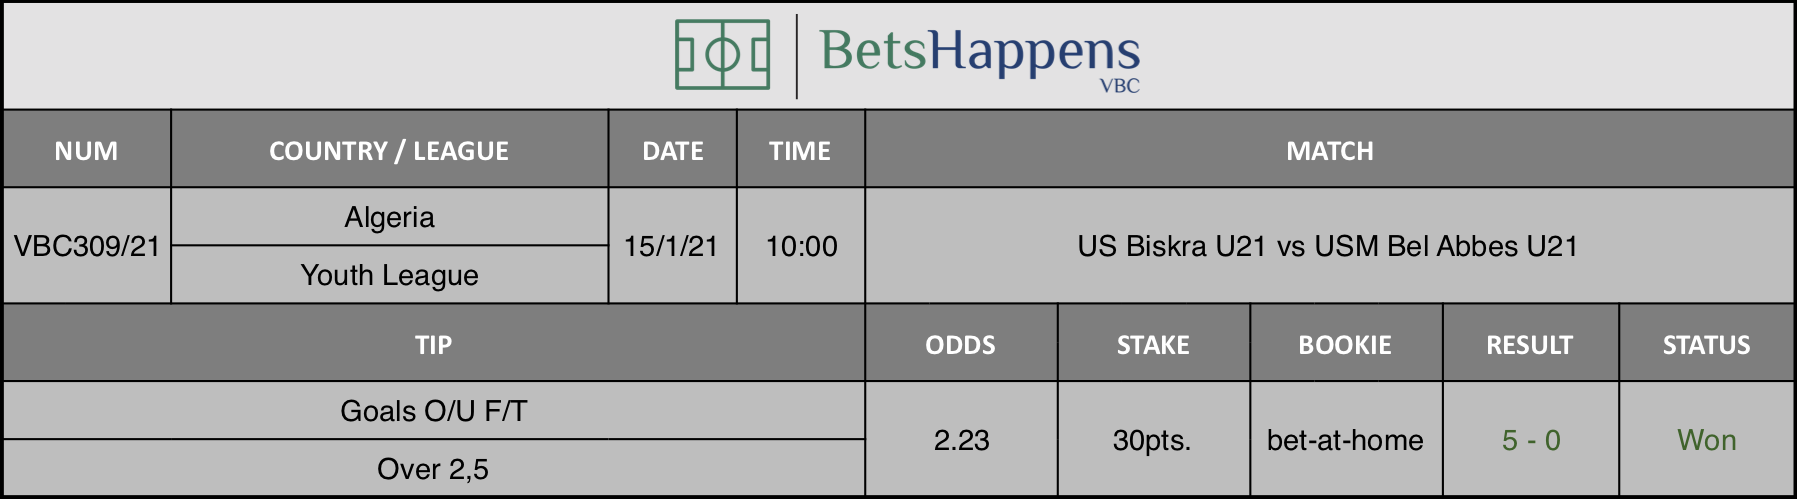 Results of our tip for the US Biskra U21 vs USM Bel Abbes U21  match where Goals O/U F/T Over 2,5 is recommended.